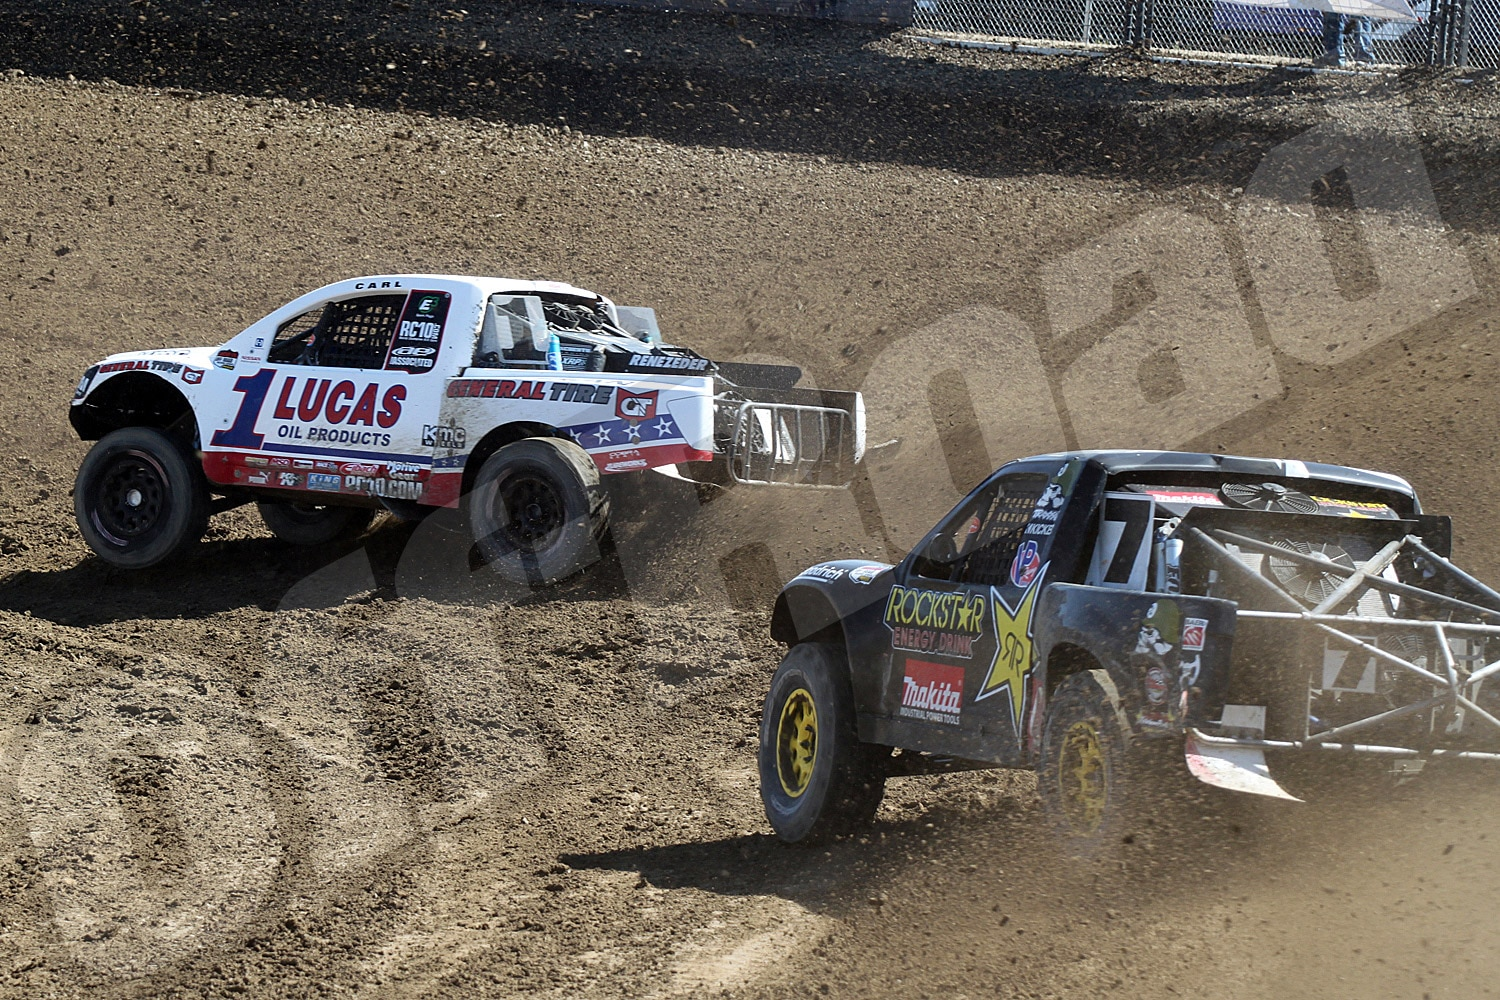 050312or 7551+2012 lucas oil off road racing series round 3+pro 4